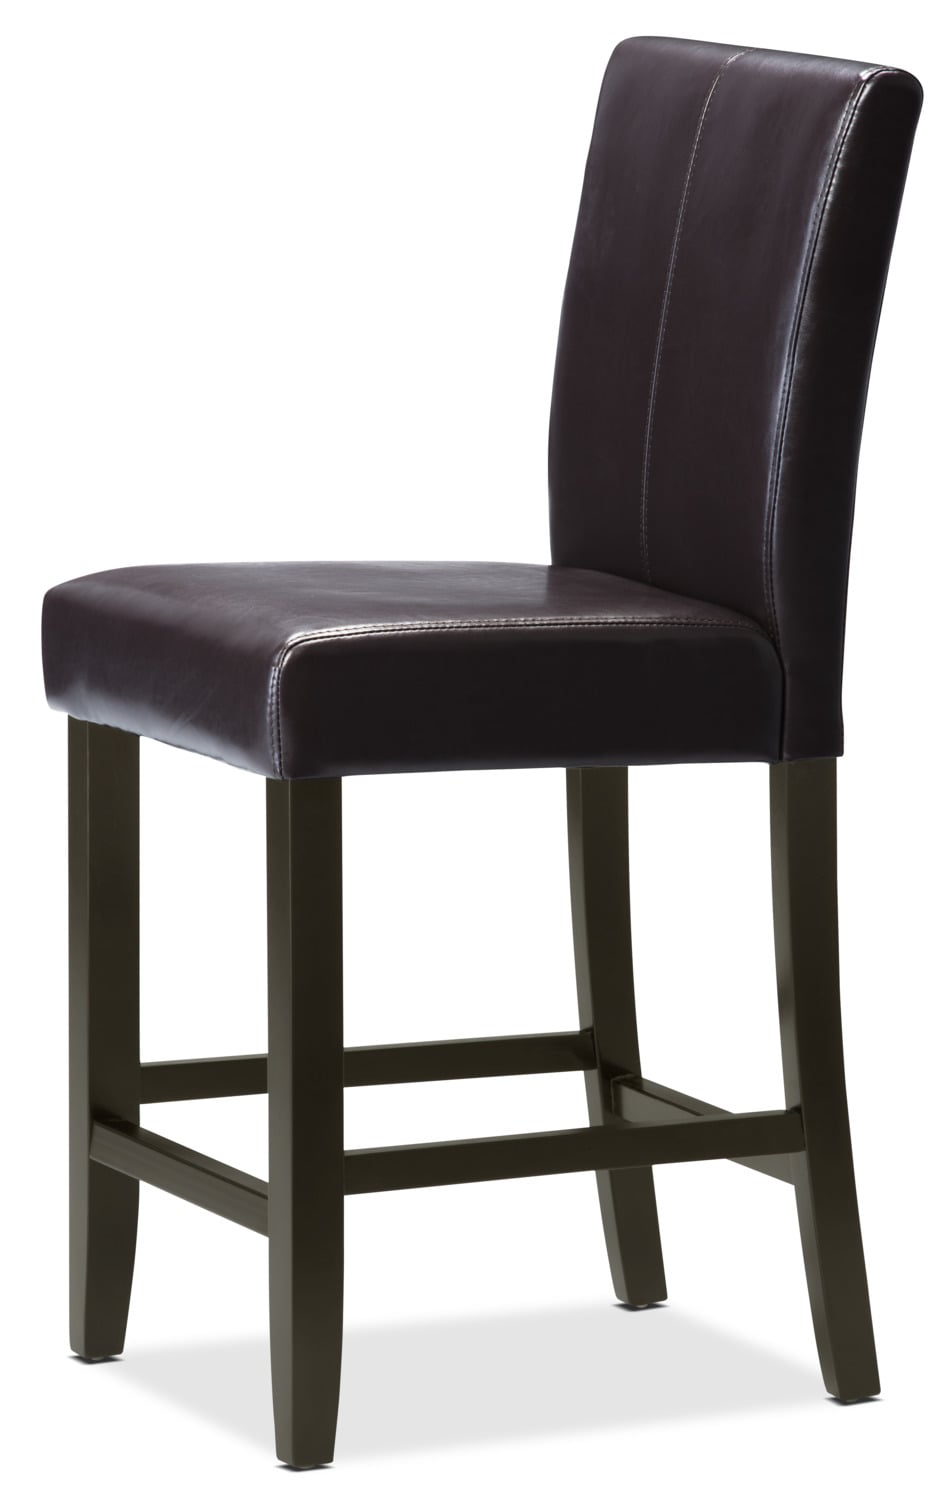 Brown Counter Height Dining Chair The Brick : 500063 from www.thebrick.com size 951 x 1500 jpeg 108kB